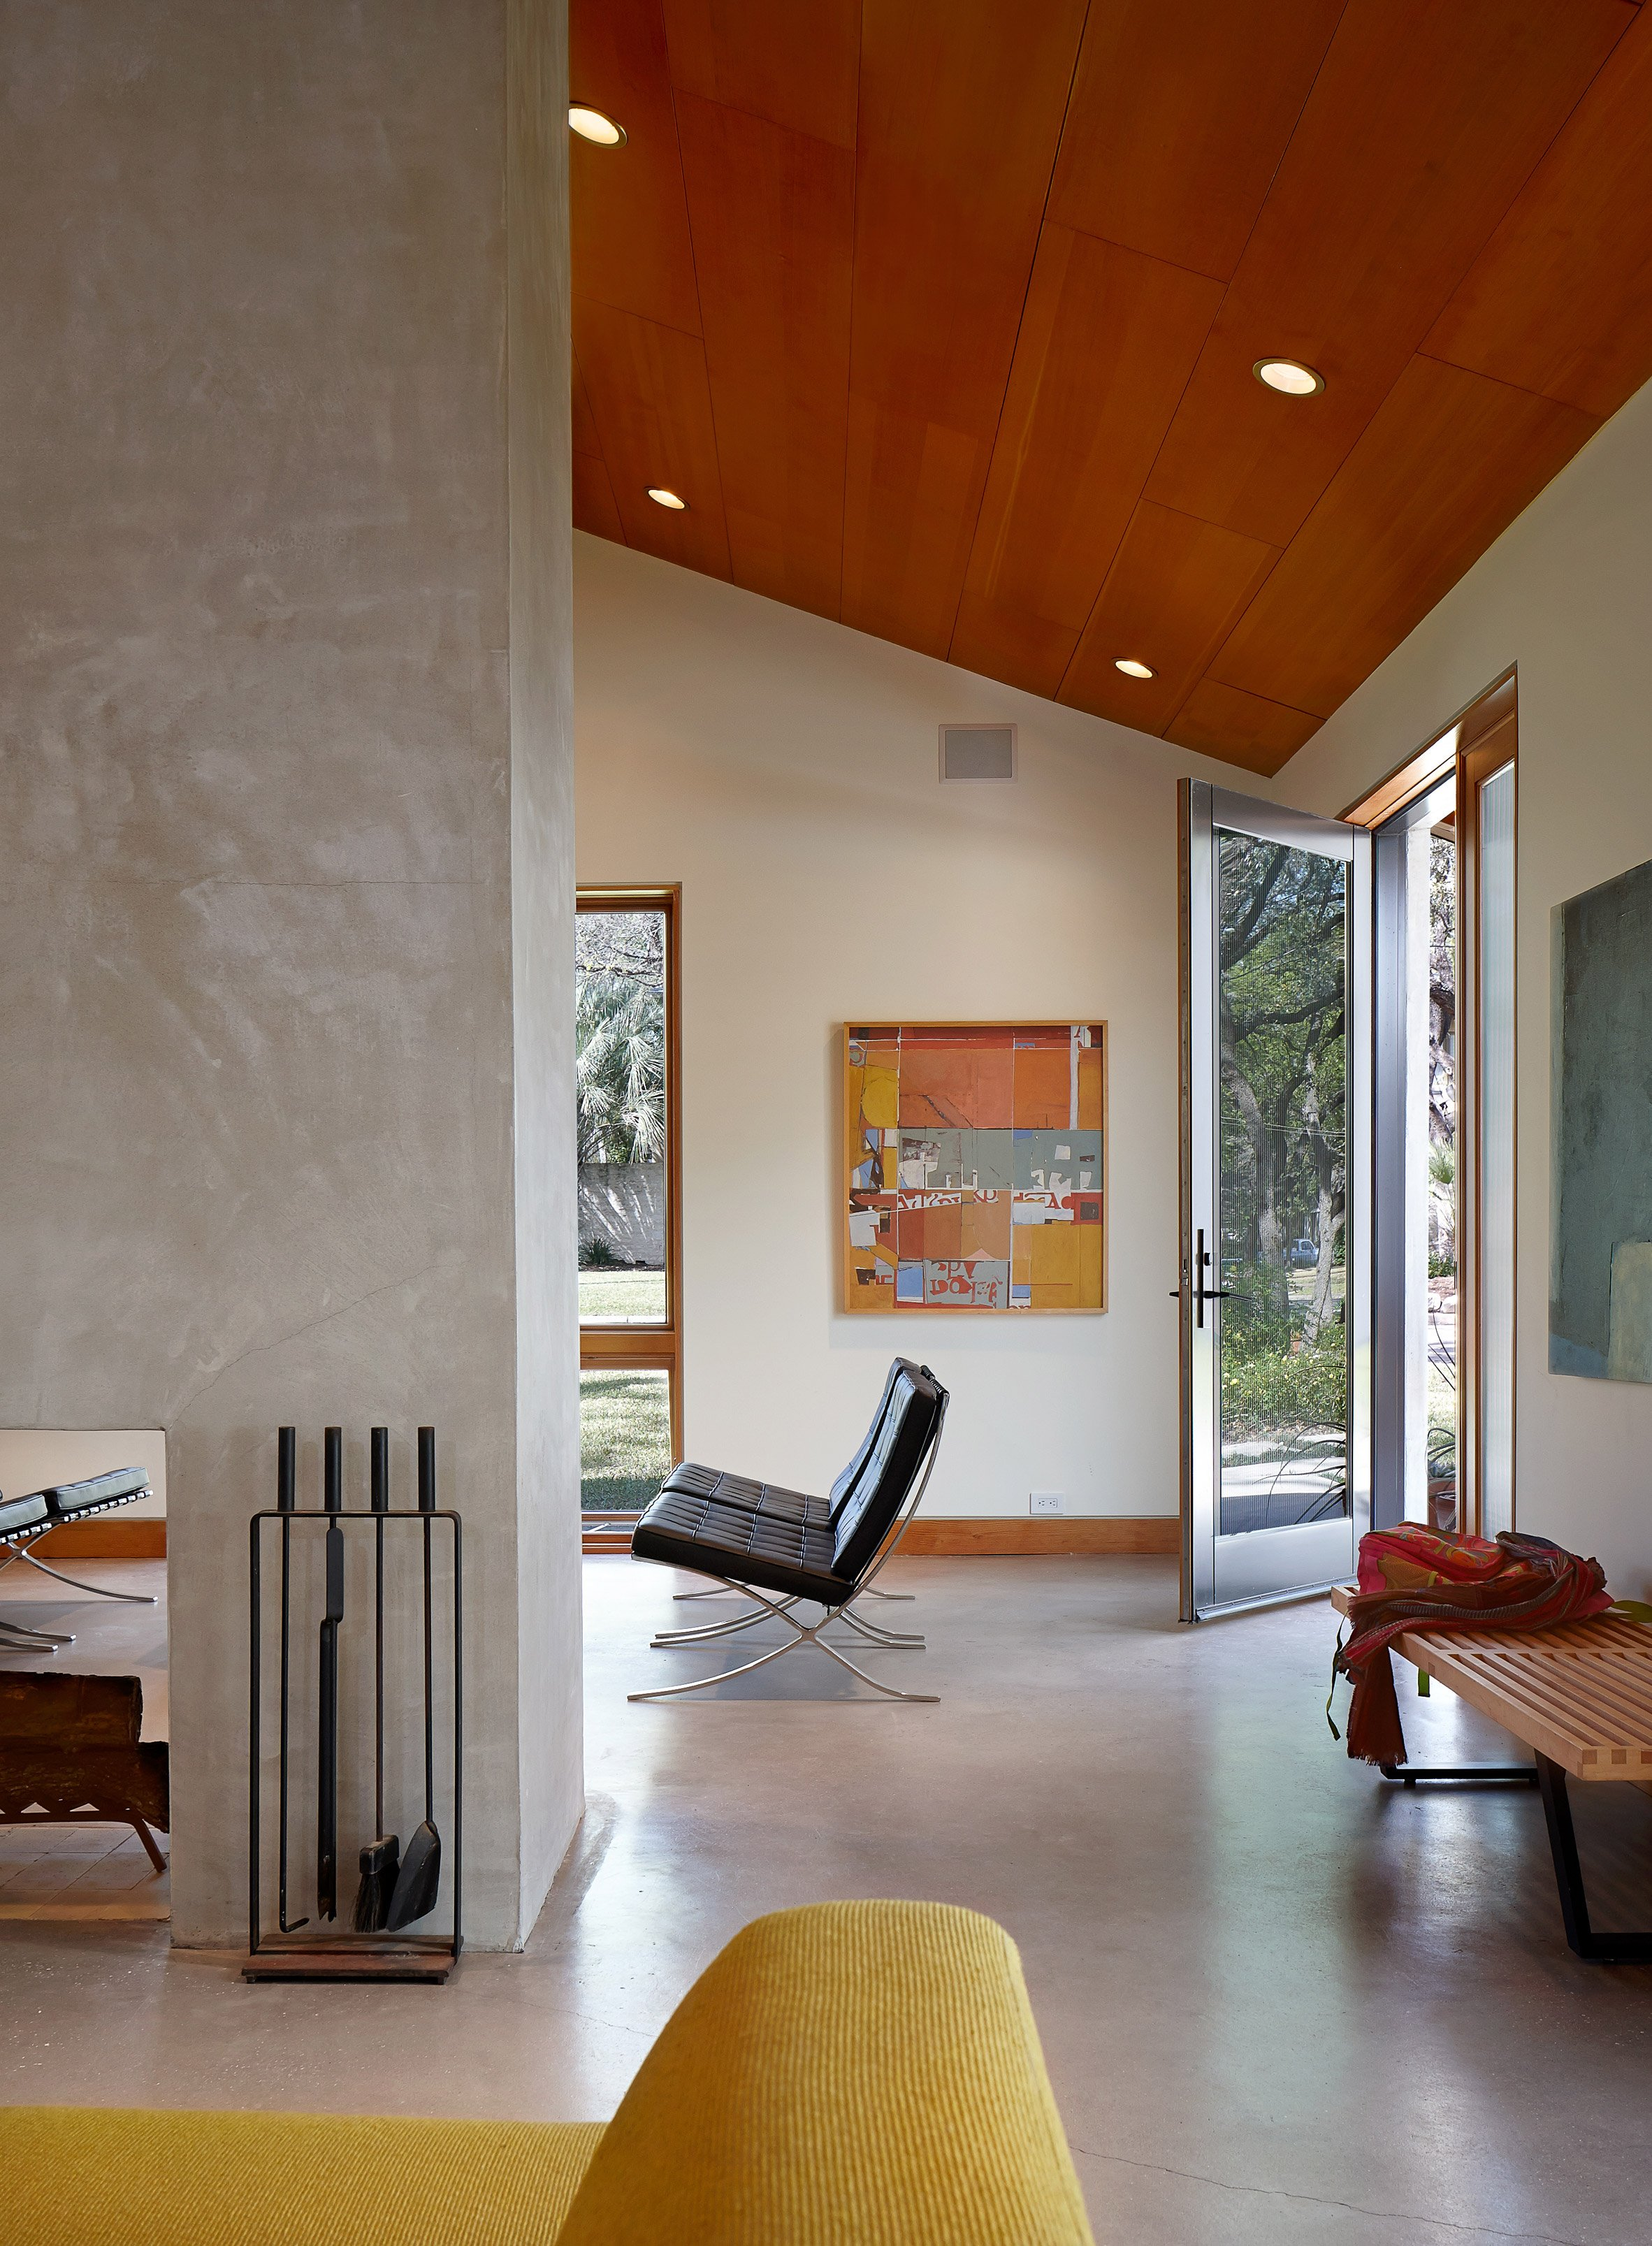 House 334 by Craig McMahon Architects